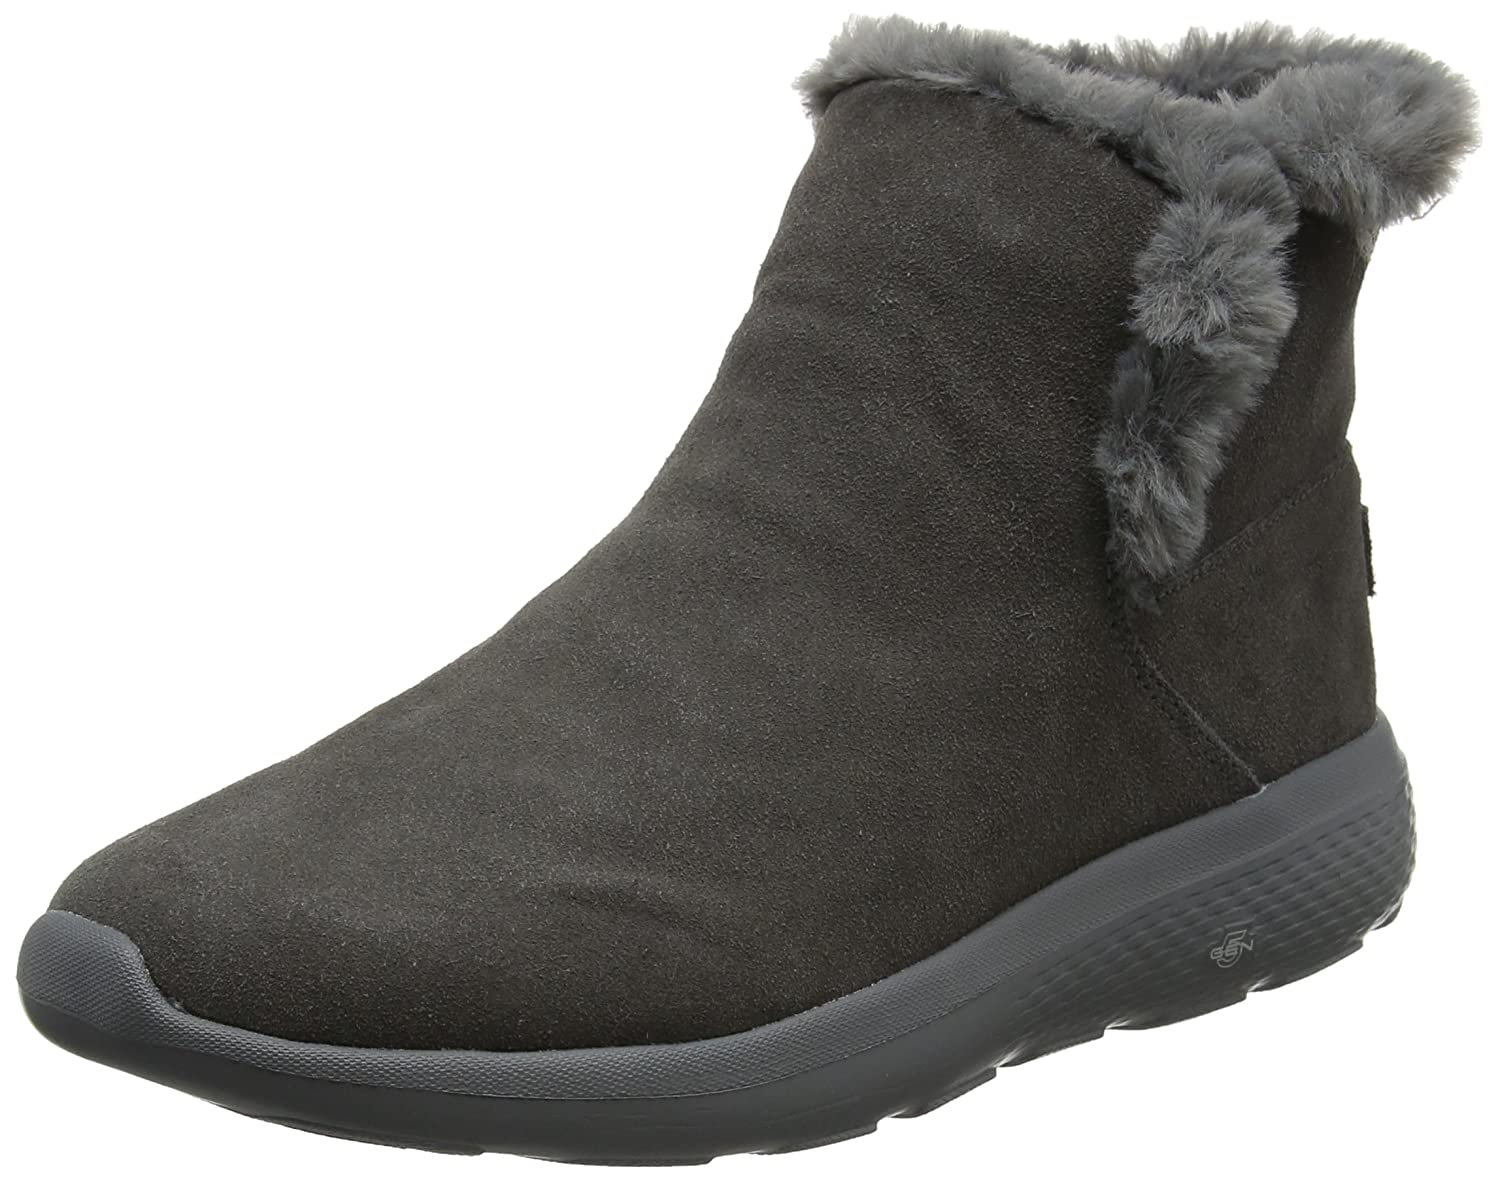 Skechers Damen On-The-go City 2 Chukka Stiefel Stiefel Stiefel Char 361af6